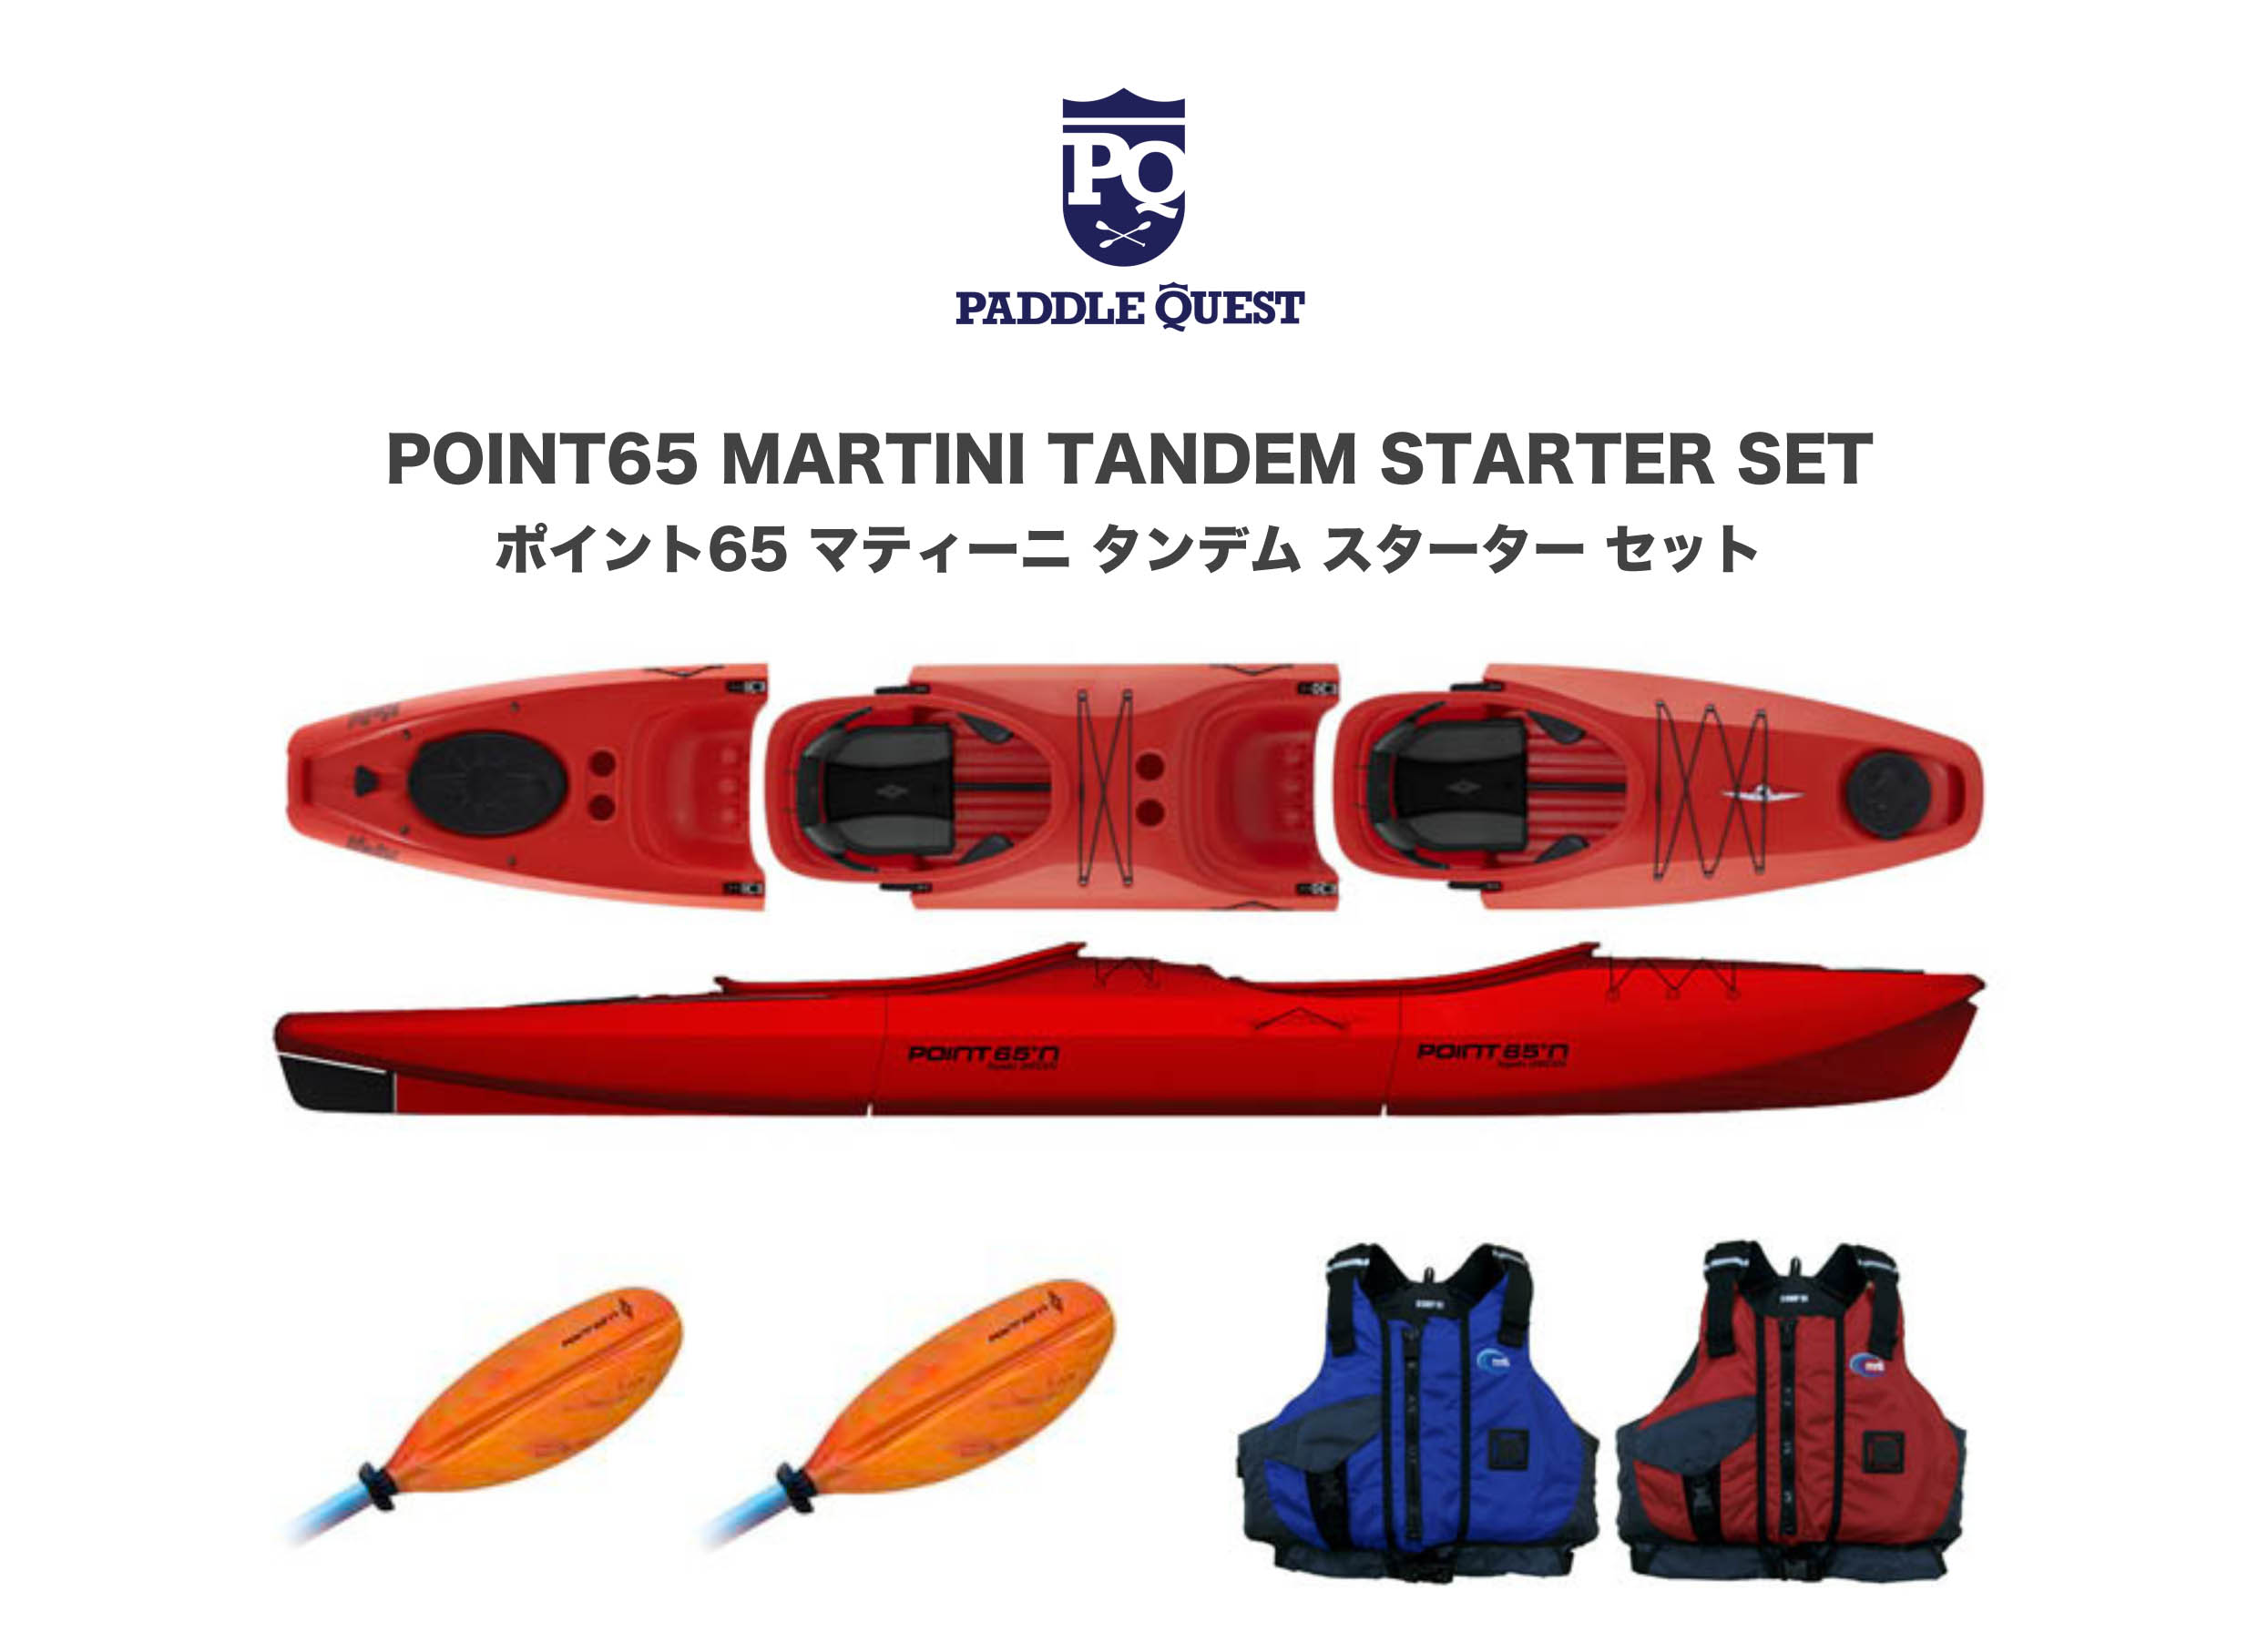 POINT65_MARTINI_Tandem_Starter_set '̃Rƒs[